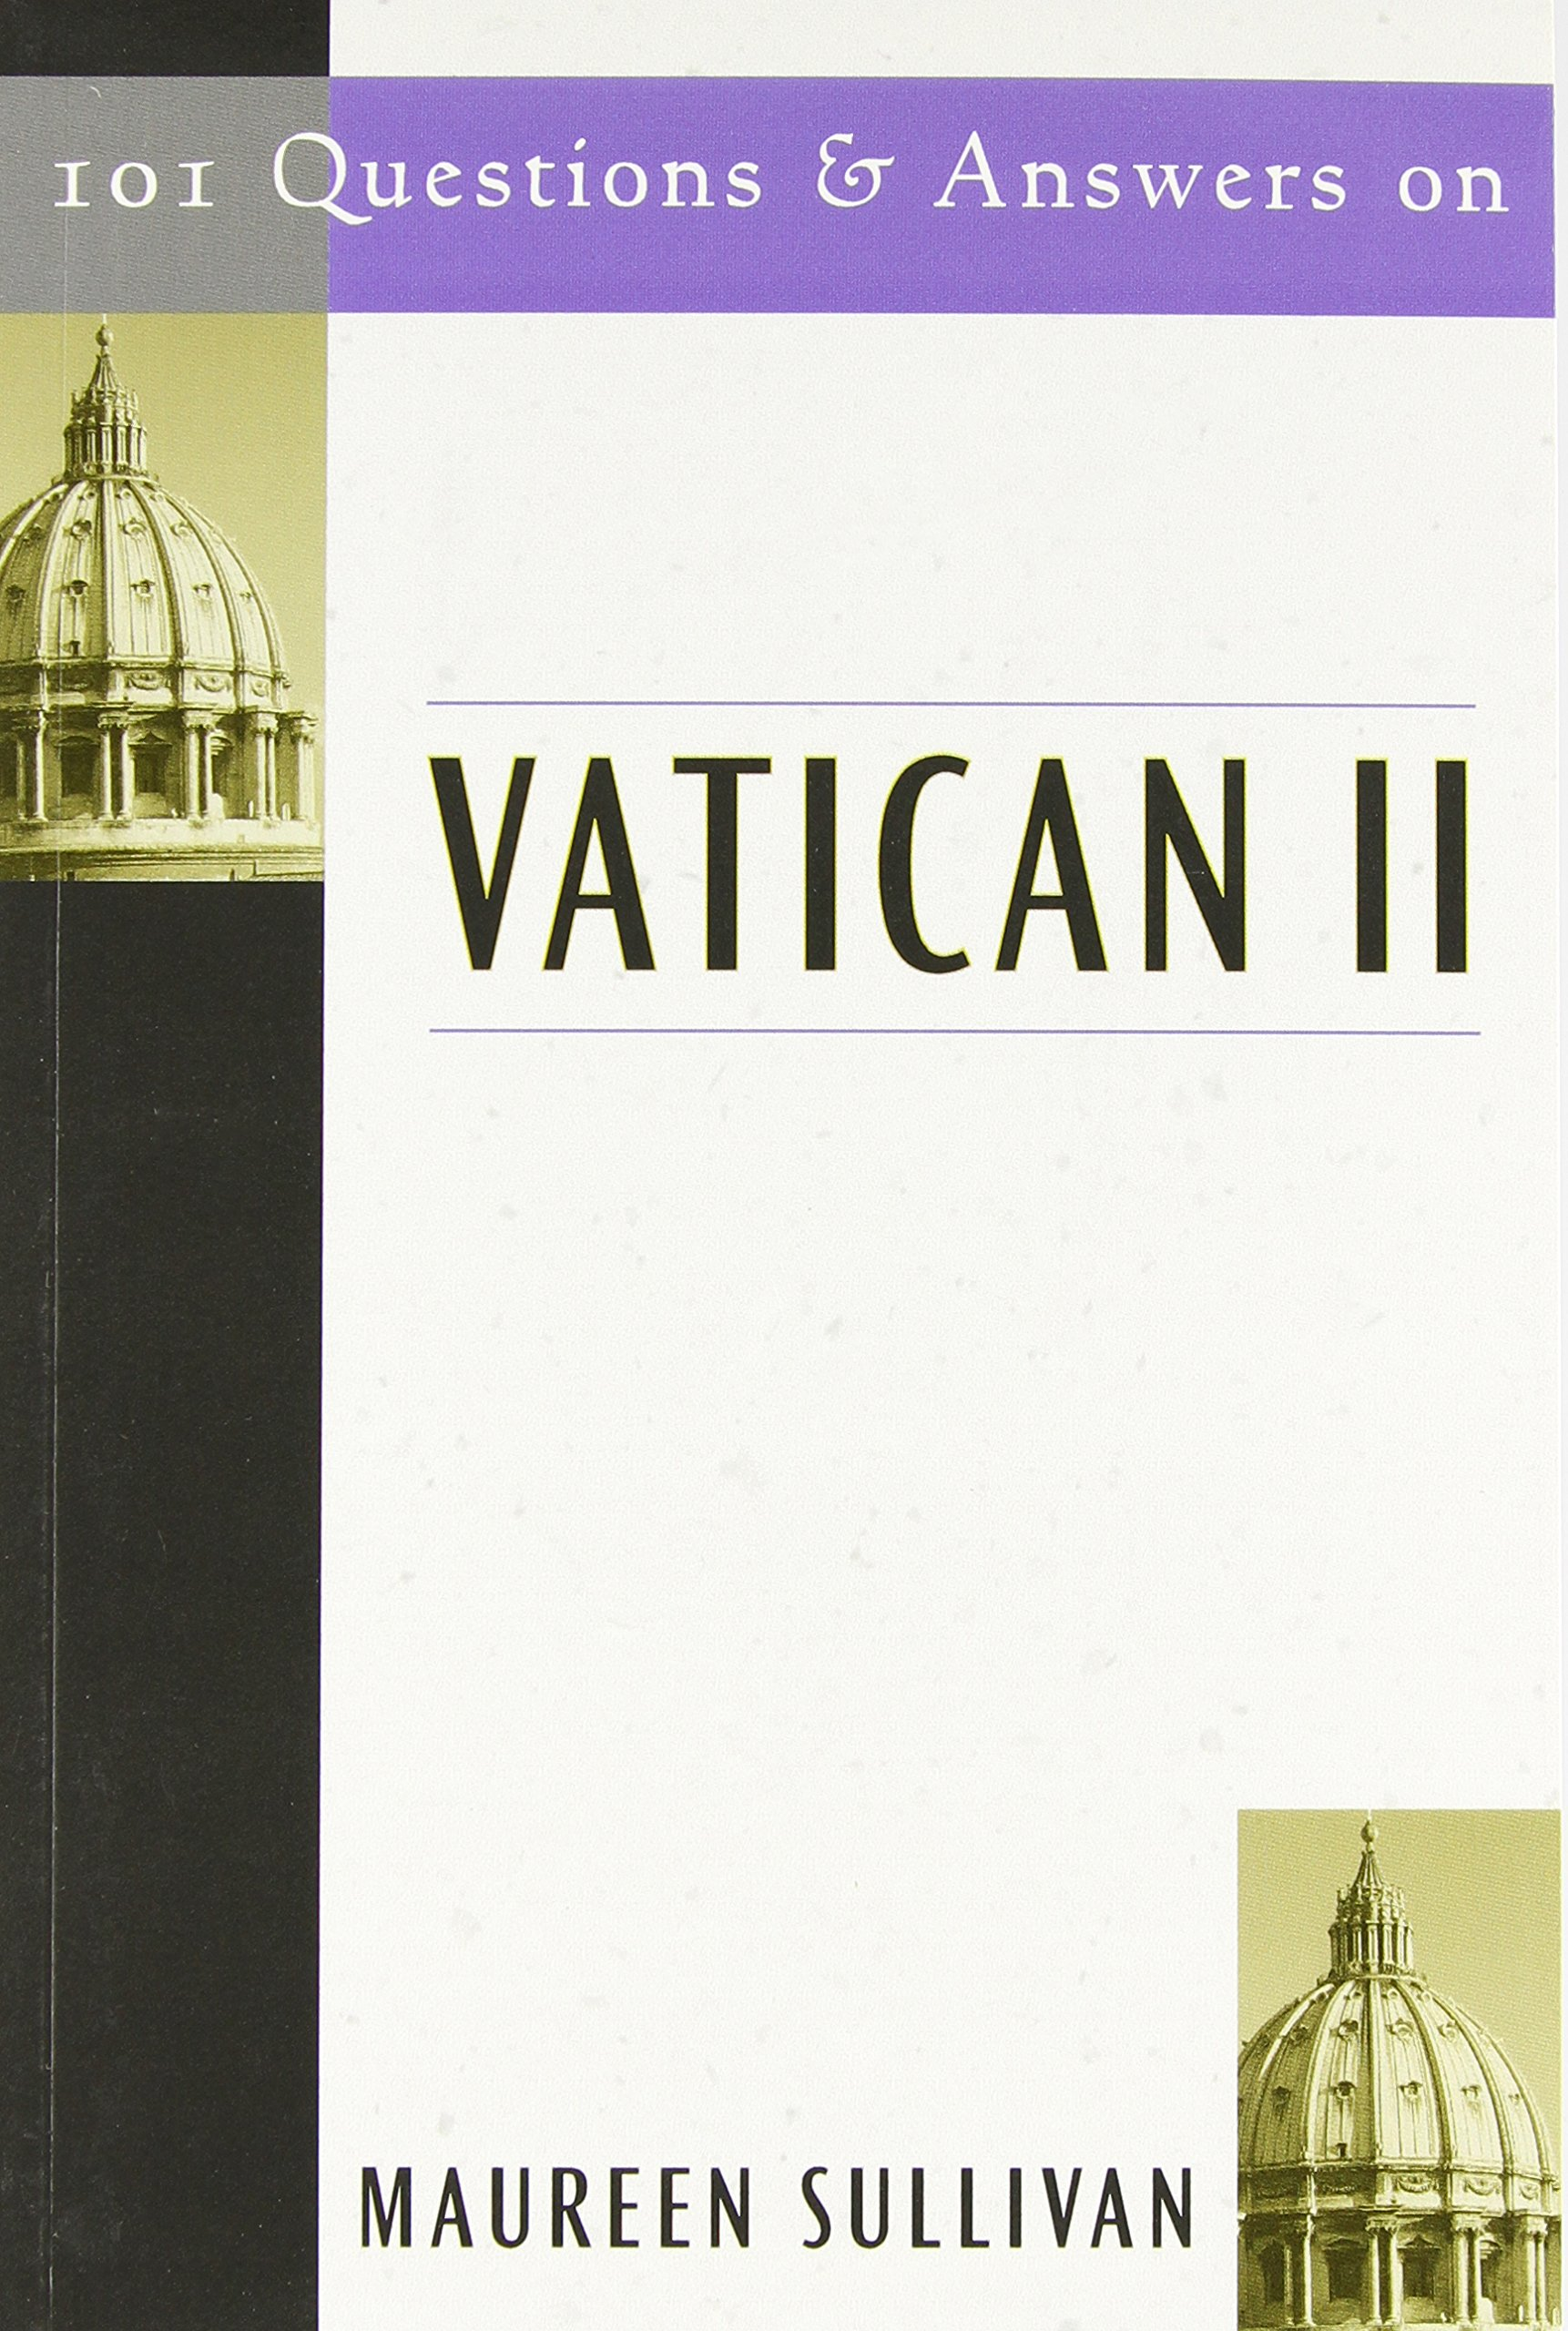 101 Questions and Answers on Vatican II: Maureen Sullivan: 9780809141333:  Amazon.com: Books